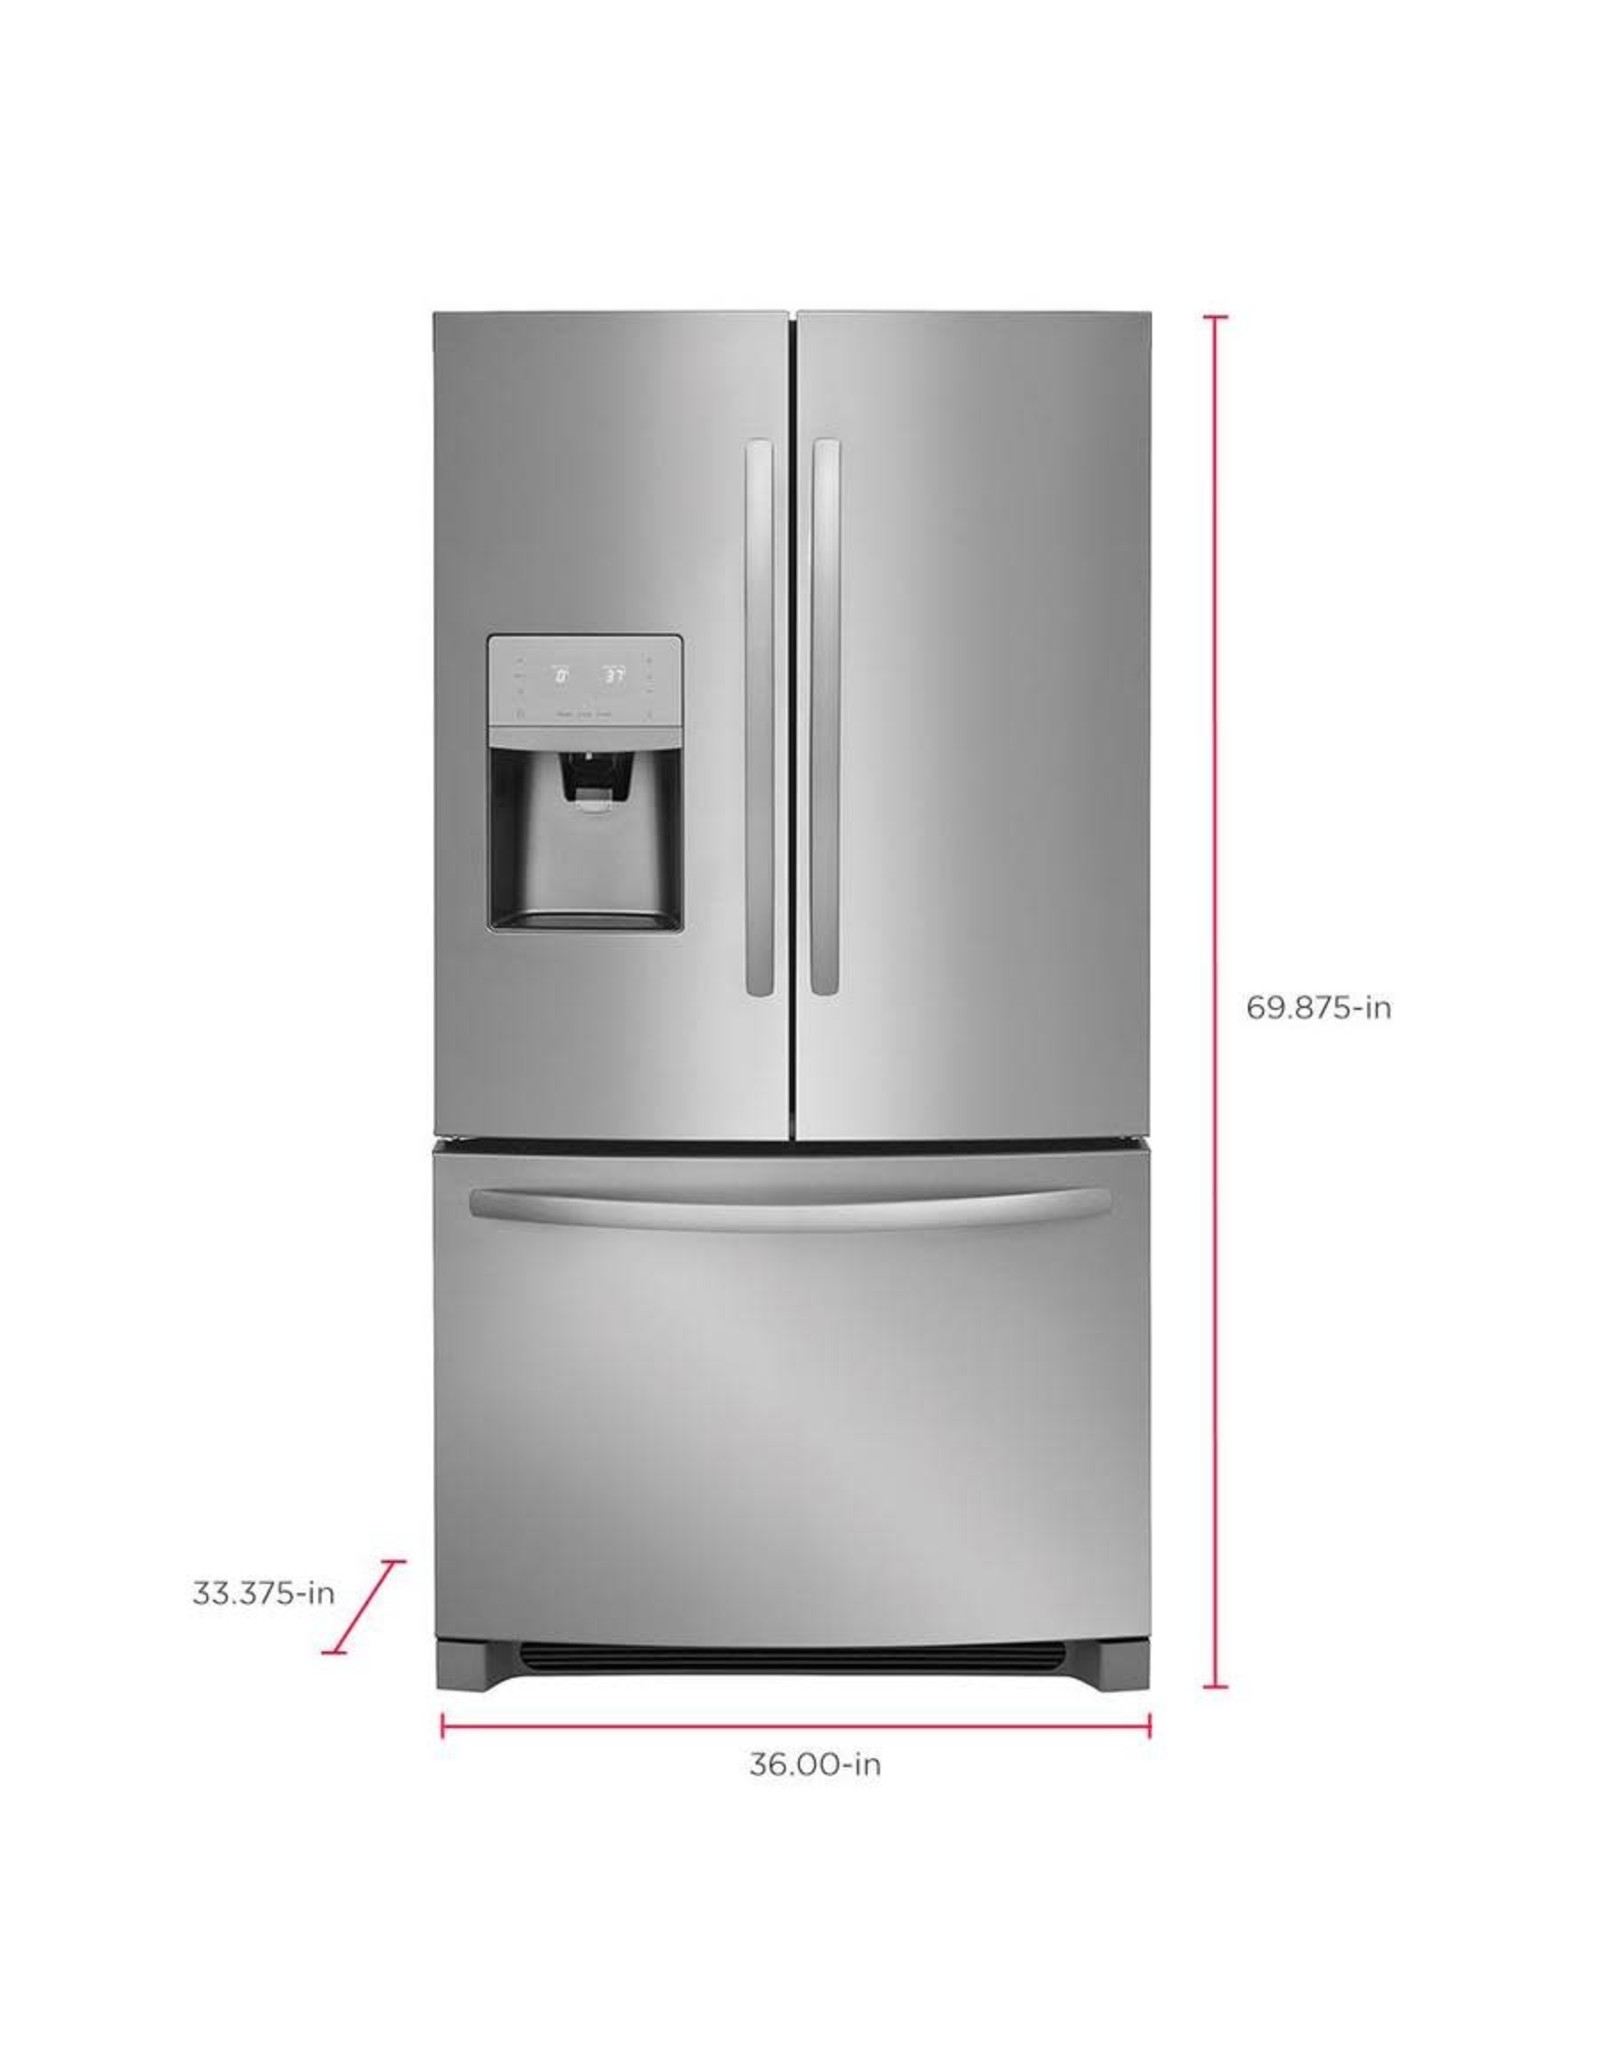 FRIGIDAIRE LFHB2751TF8 26.8-cu ft French Door Refrigerator with Ice Maker (EasyCare Stainless Steel) ENERGY STAR